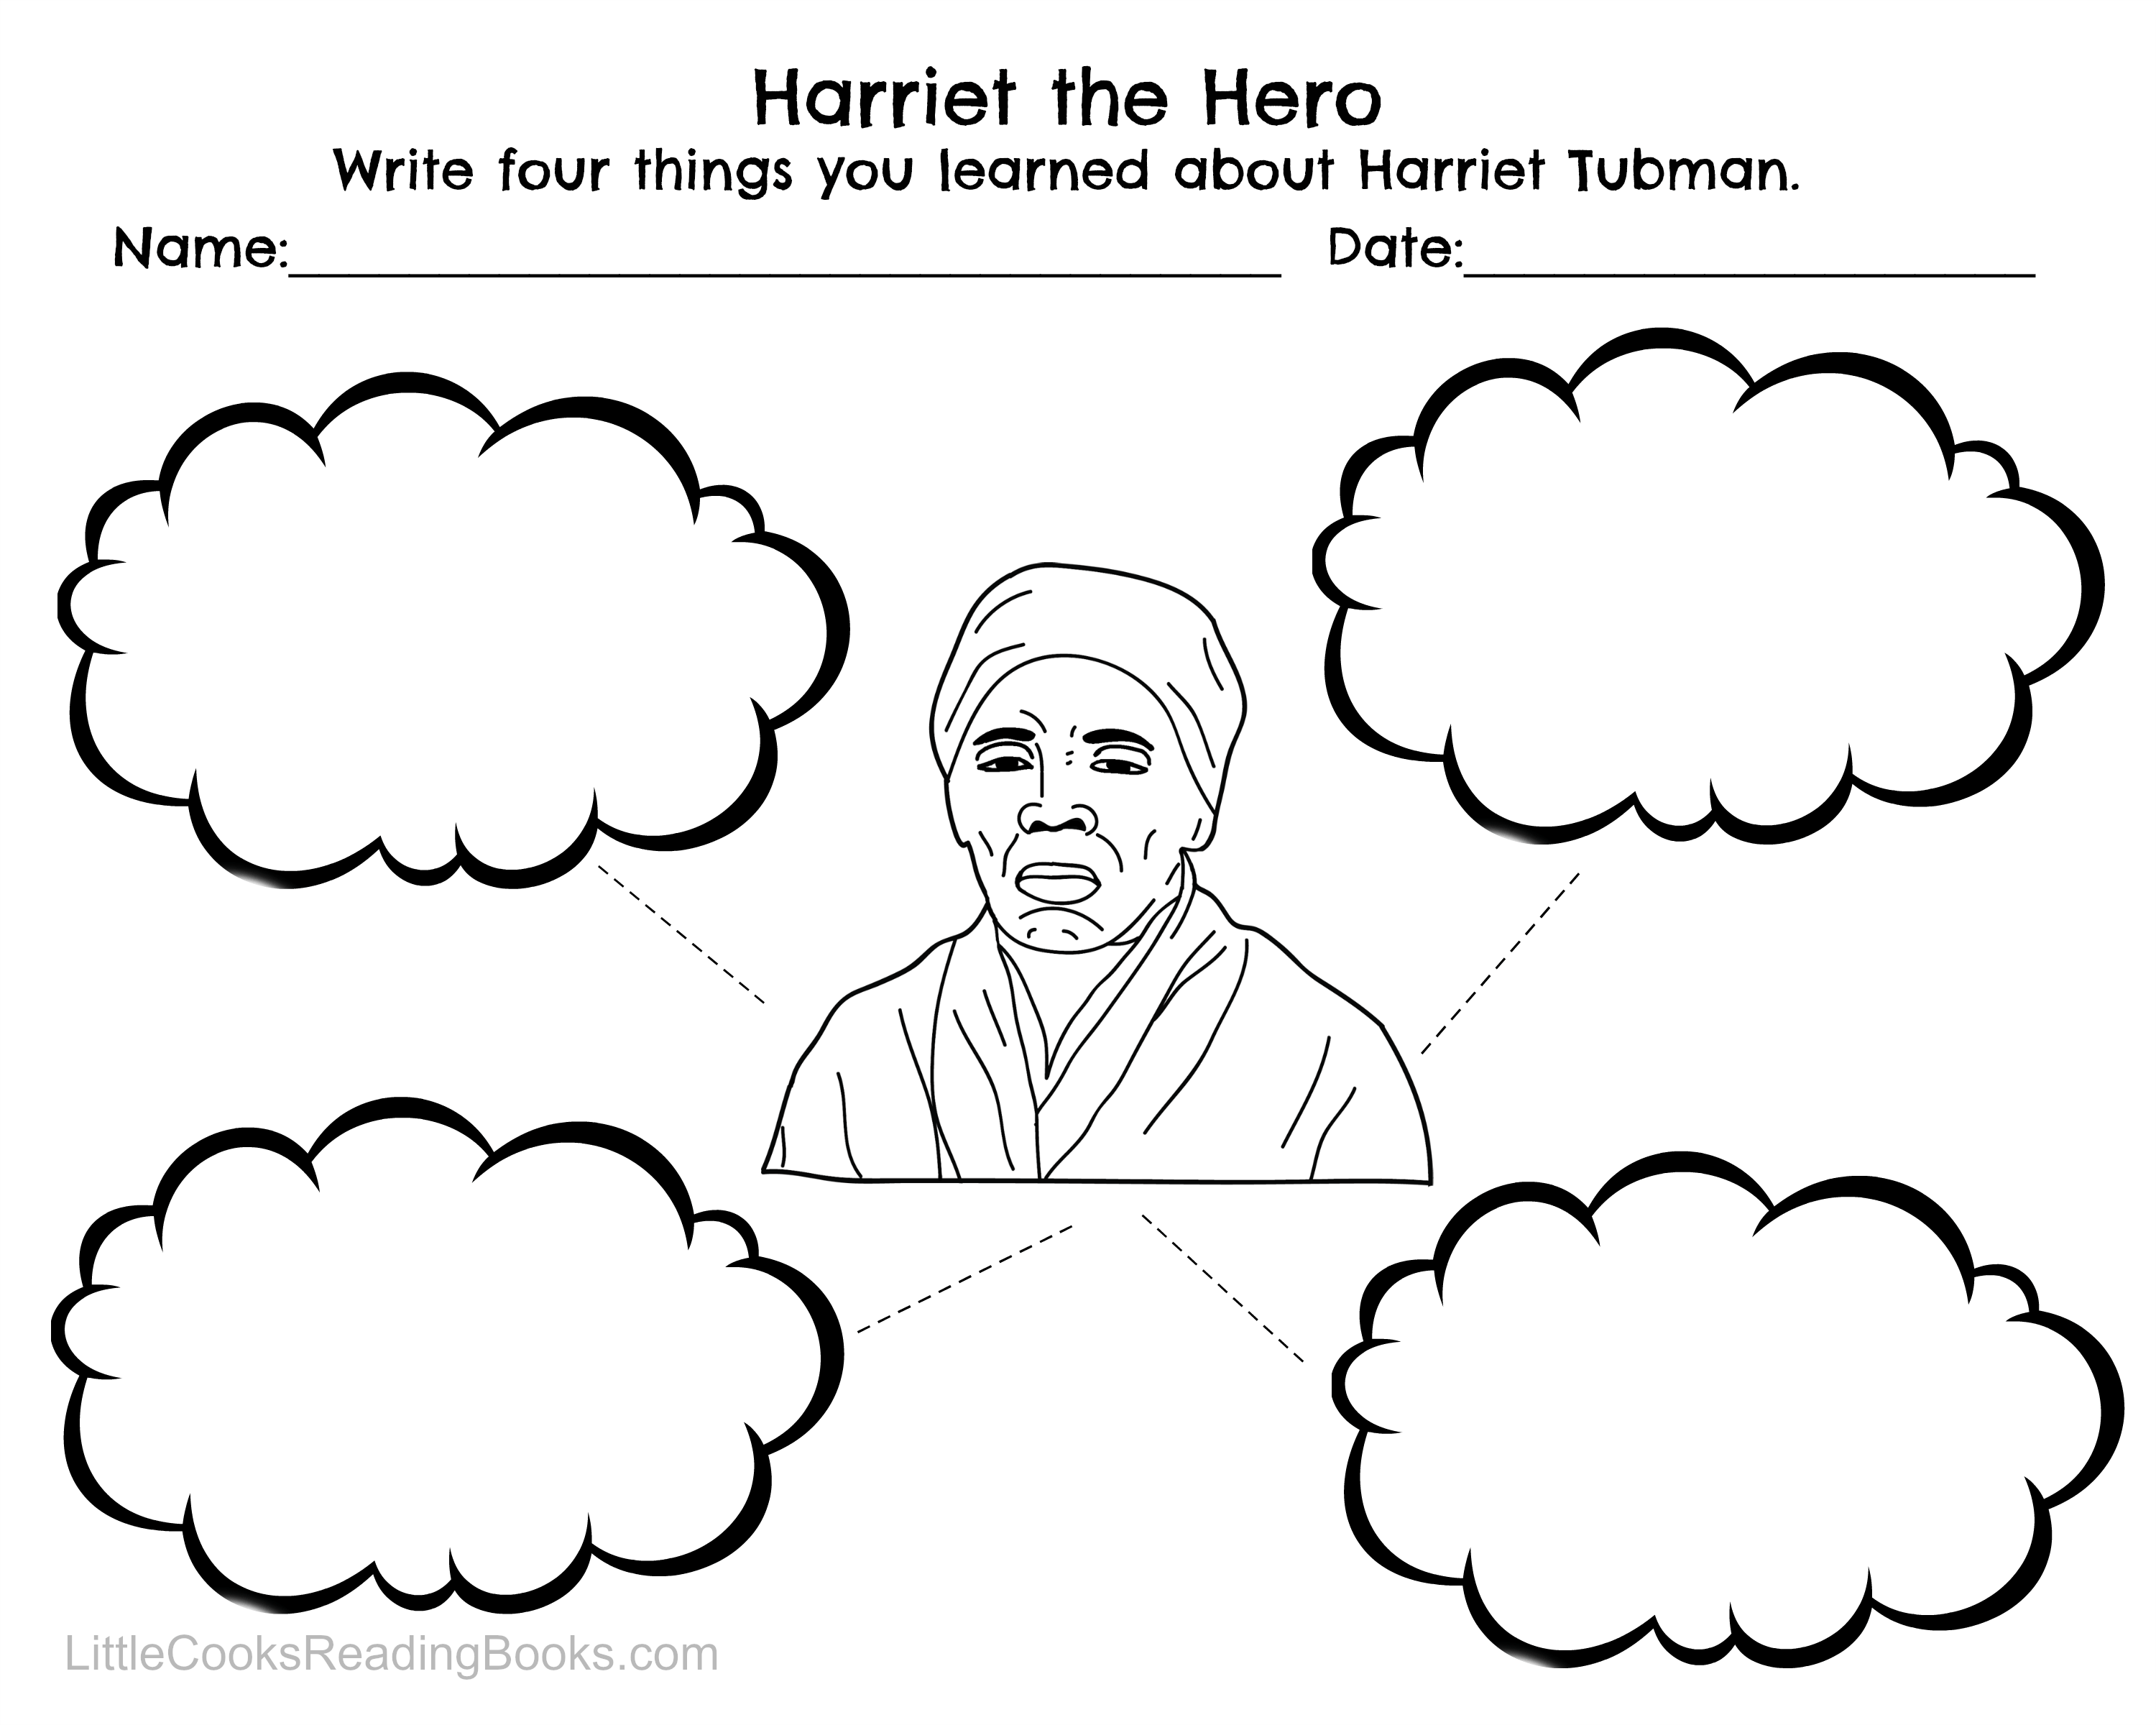 Harriet Tubman Printable Coloring Page